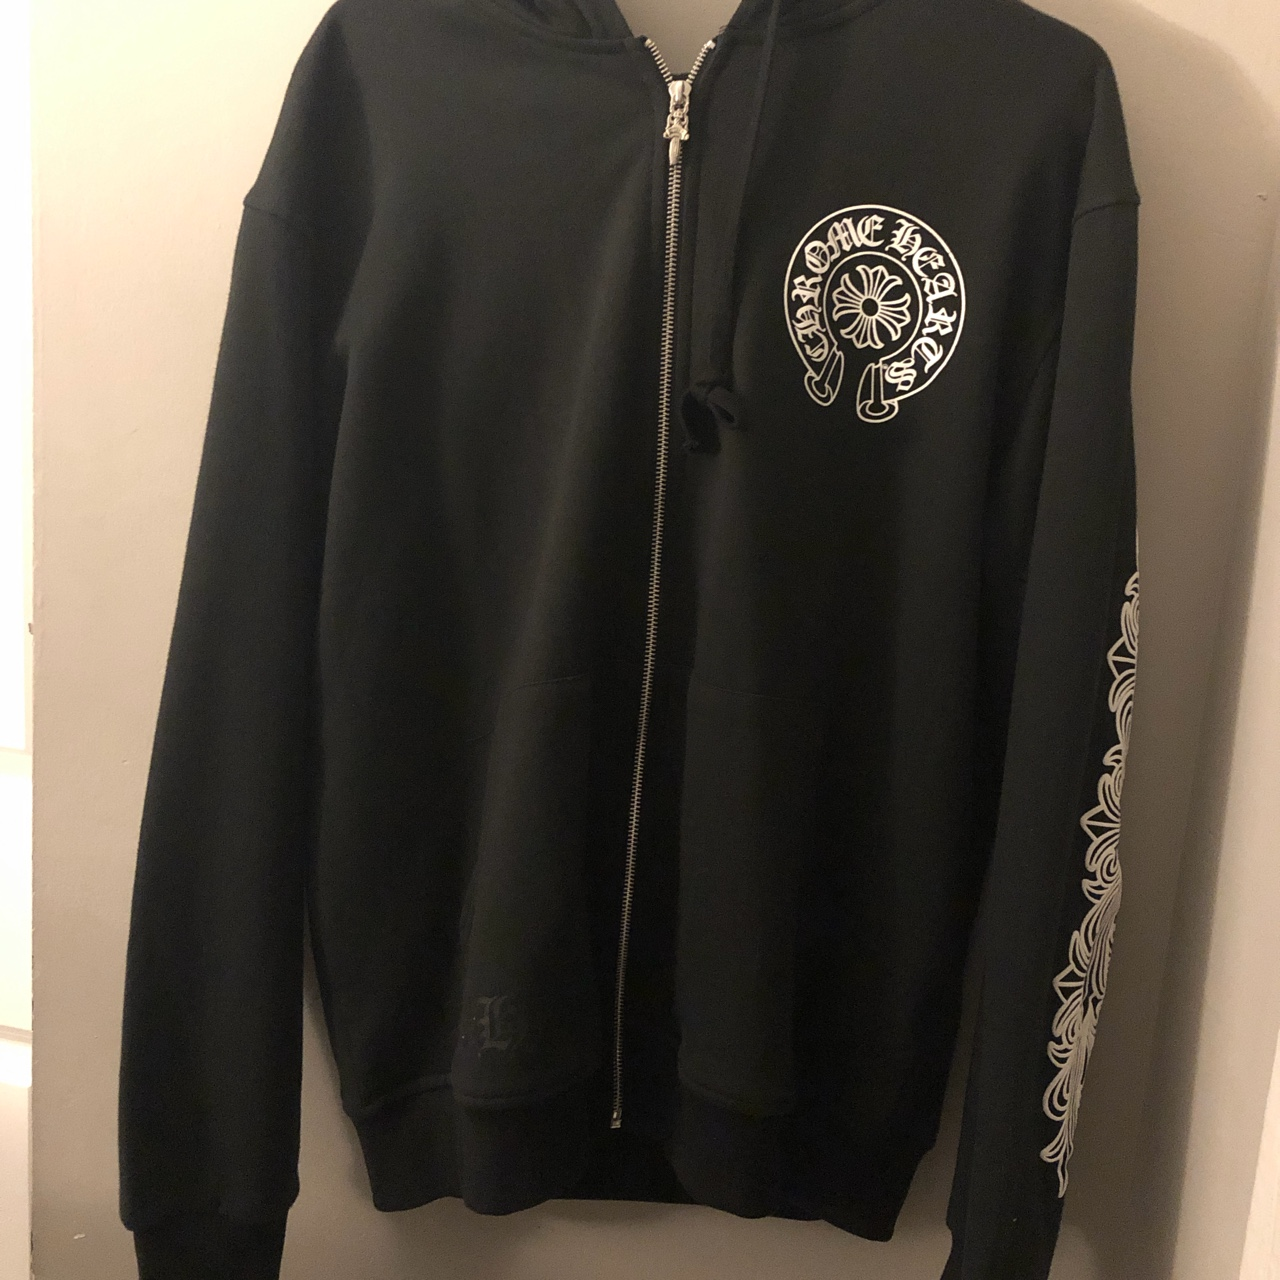 Product Image 1 - Chrome Hearts Hoodie New York